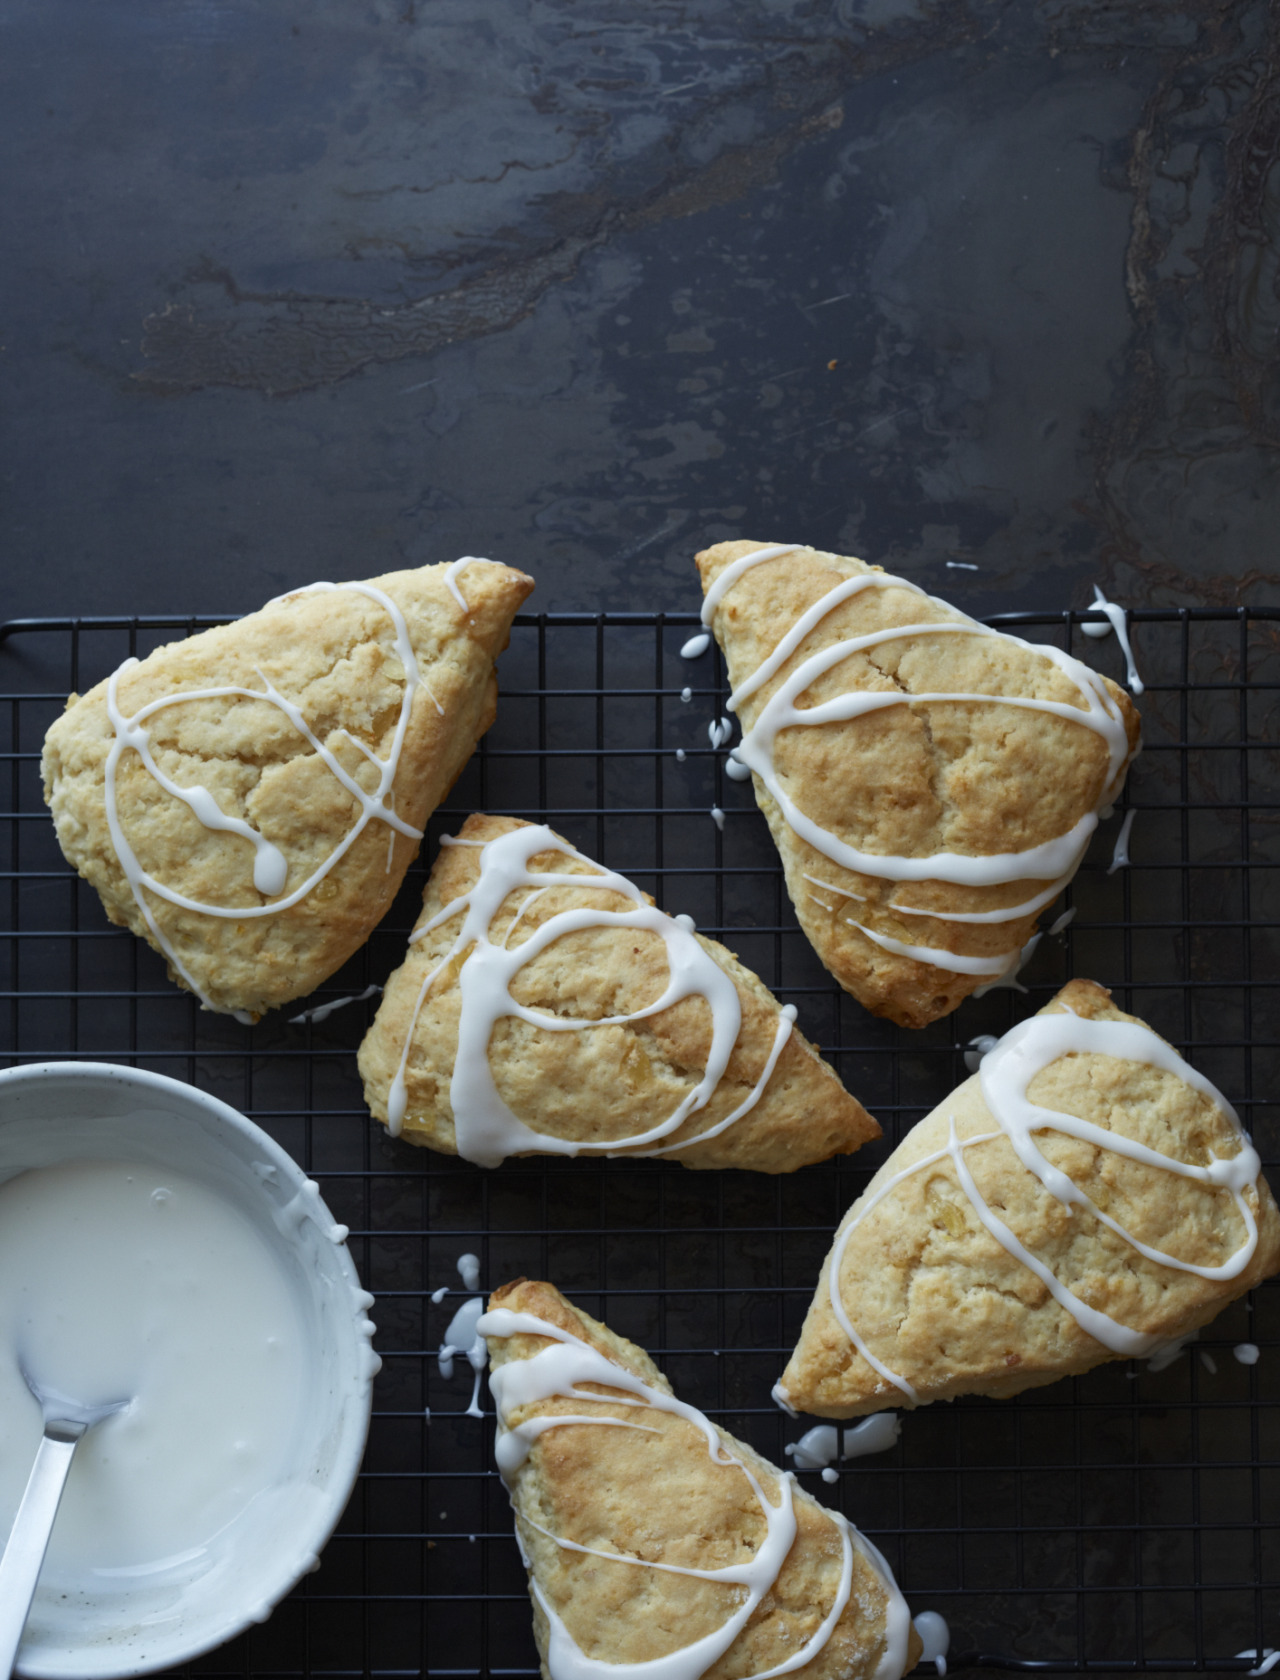 © Con PoulosGlazed Lemon-Ginger Scones RecipeContributed by Aimee OlexyClick here for full recipe